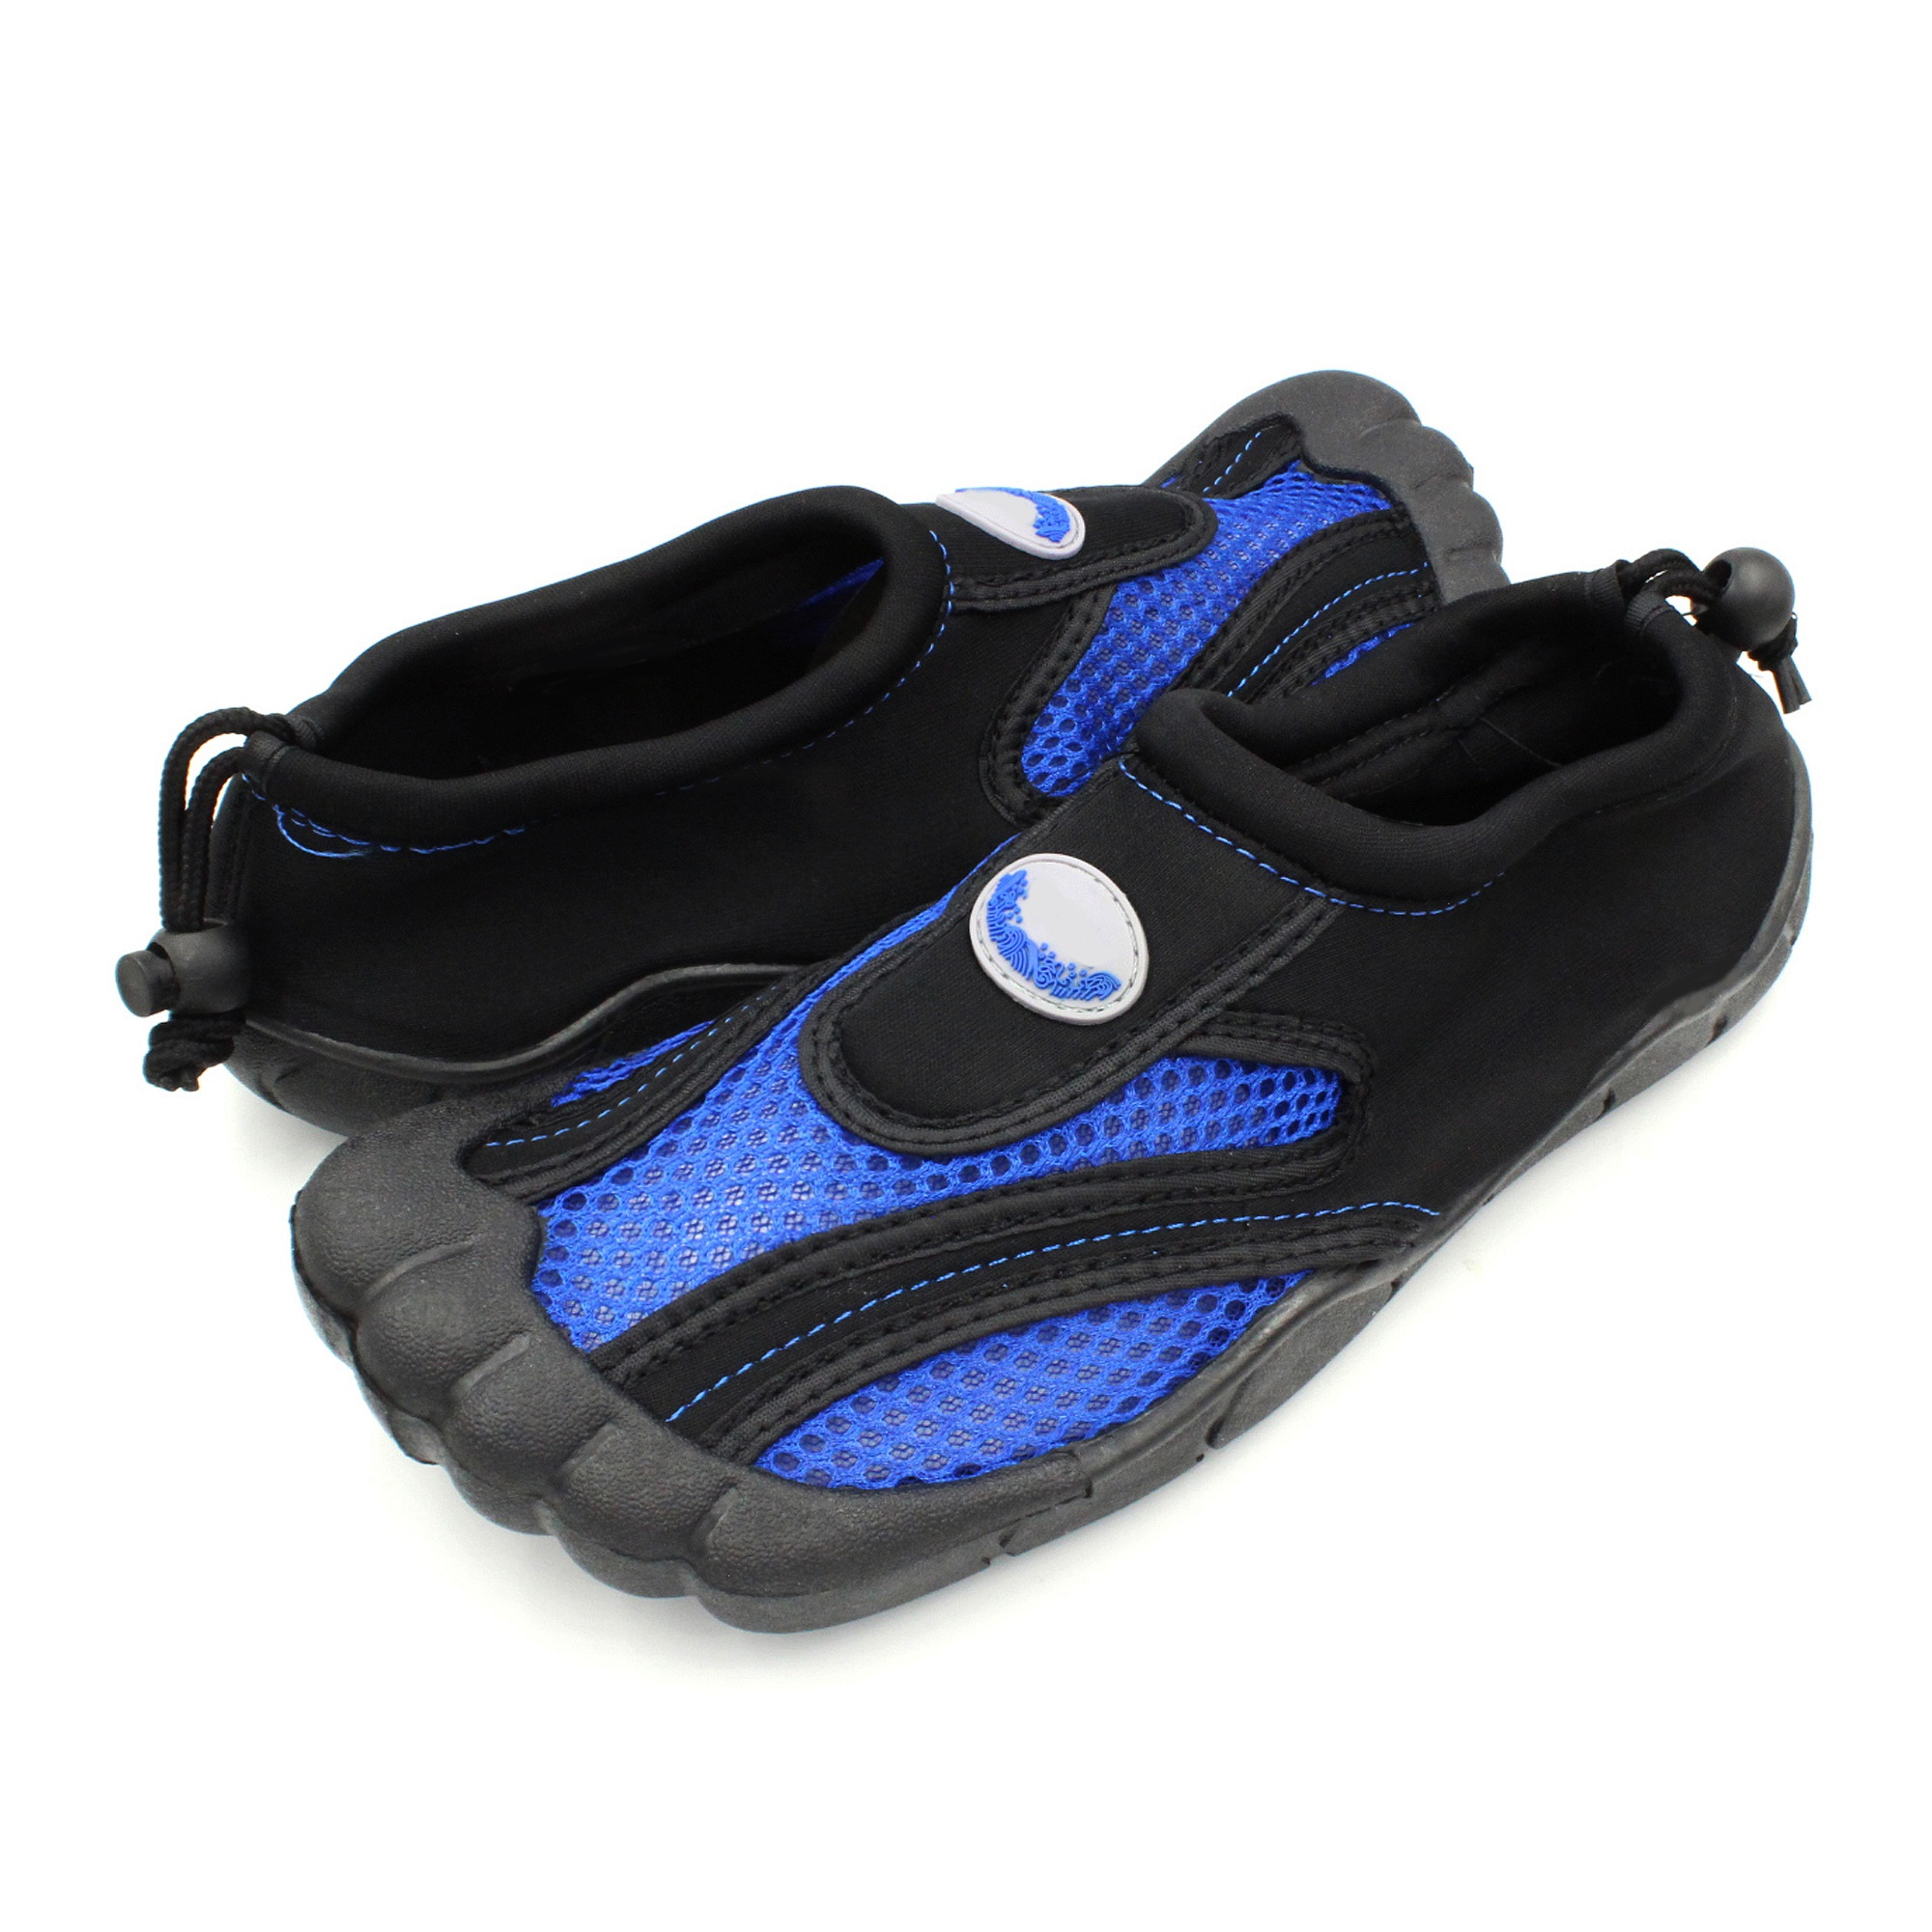 56f0b8063 Water friendly and quick drying material. Drawstring closure. Heavy tread  on the bottom for slip resistance. Flexible sole. Waterproof toe coating